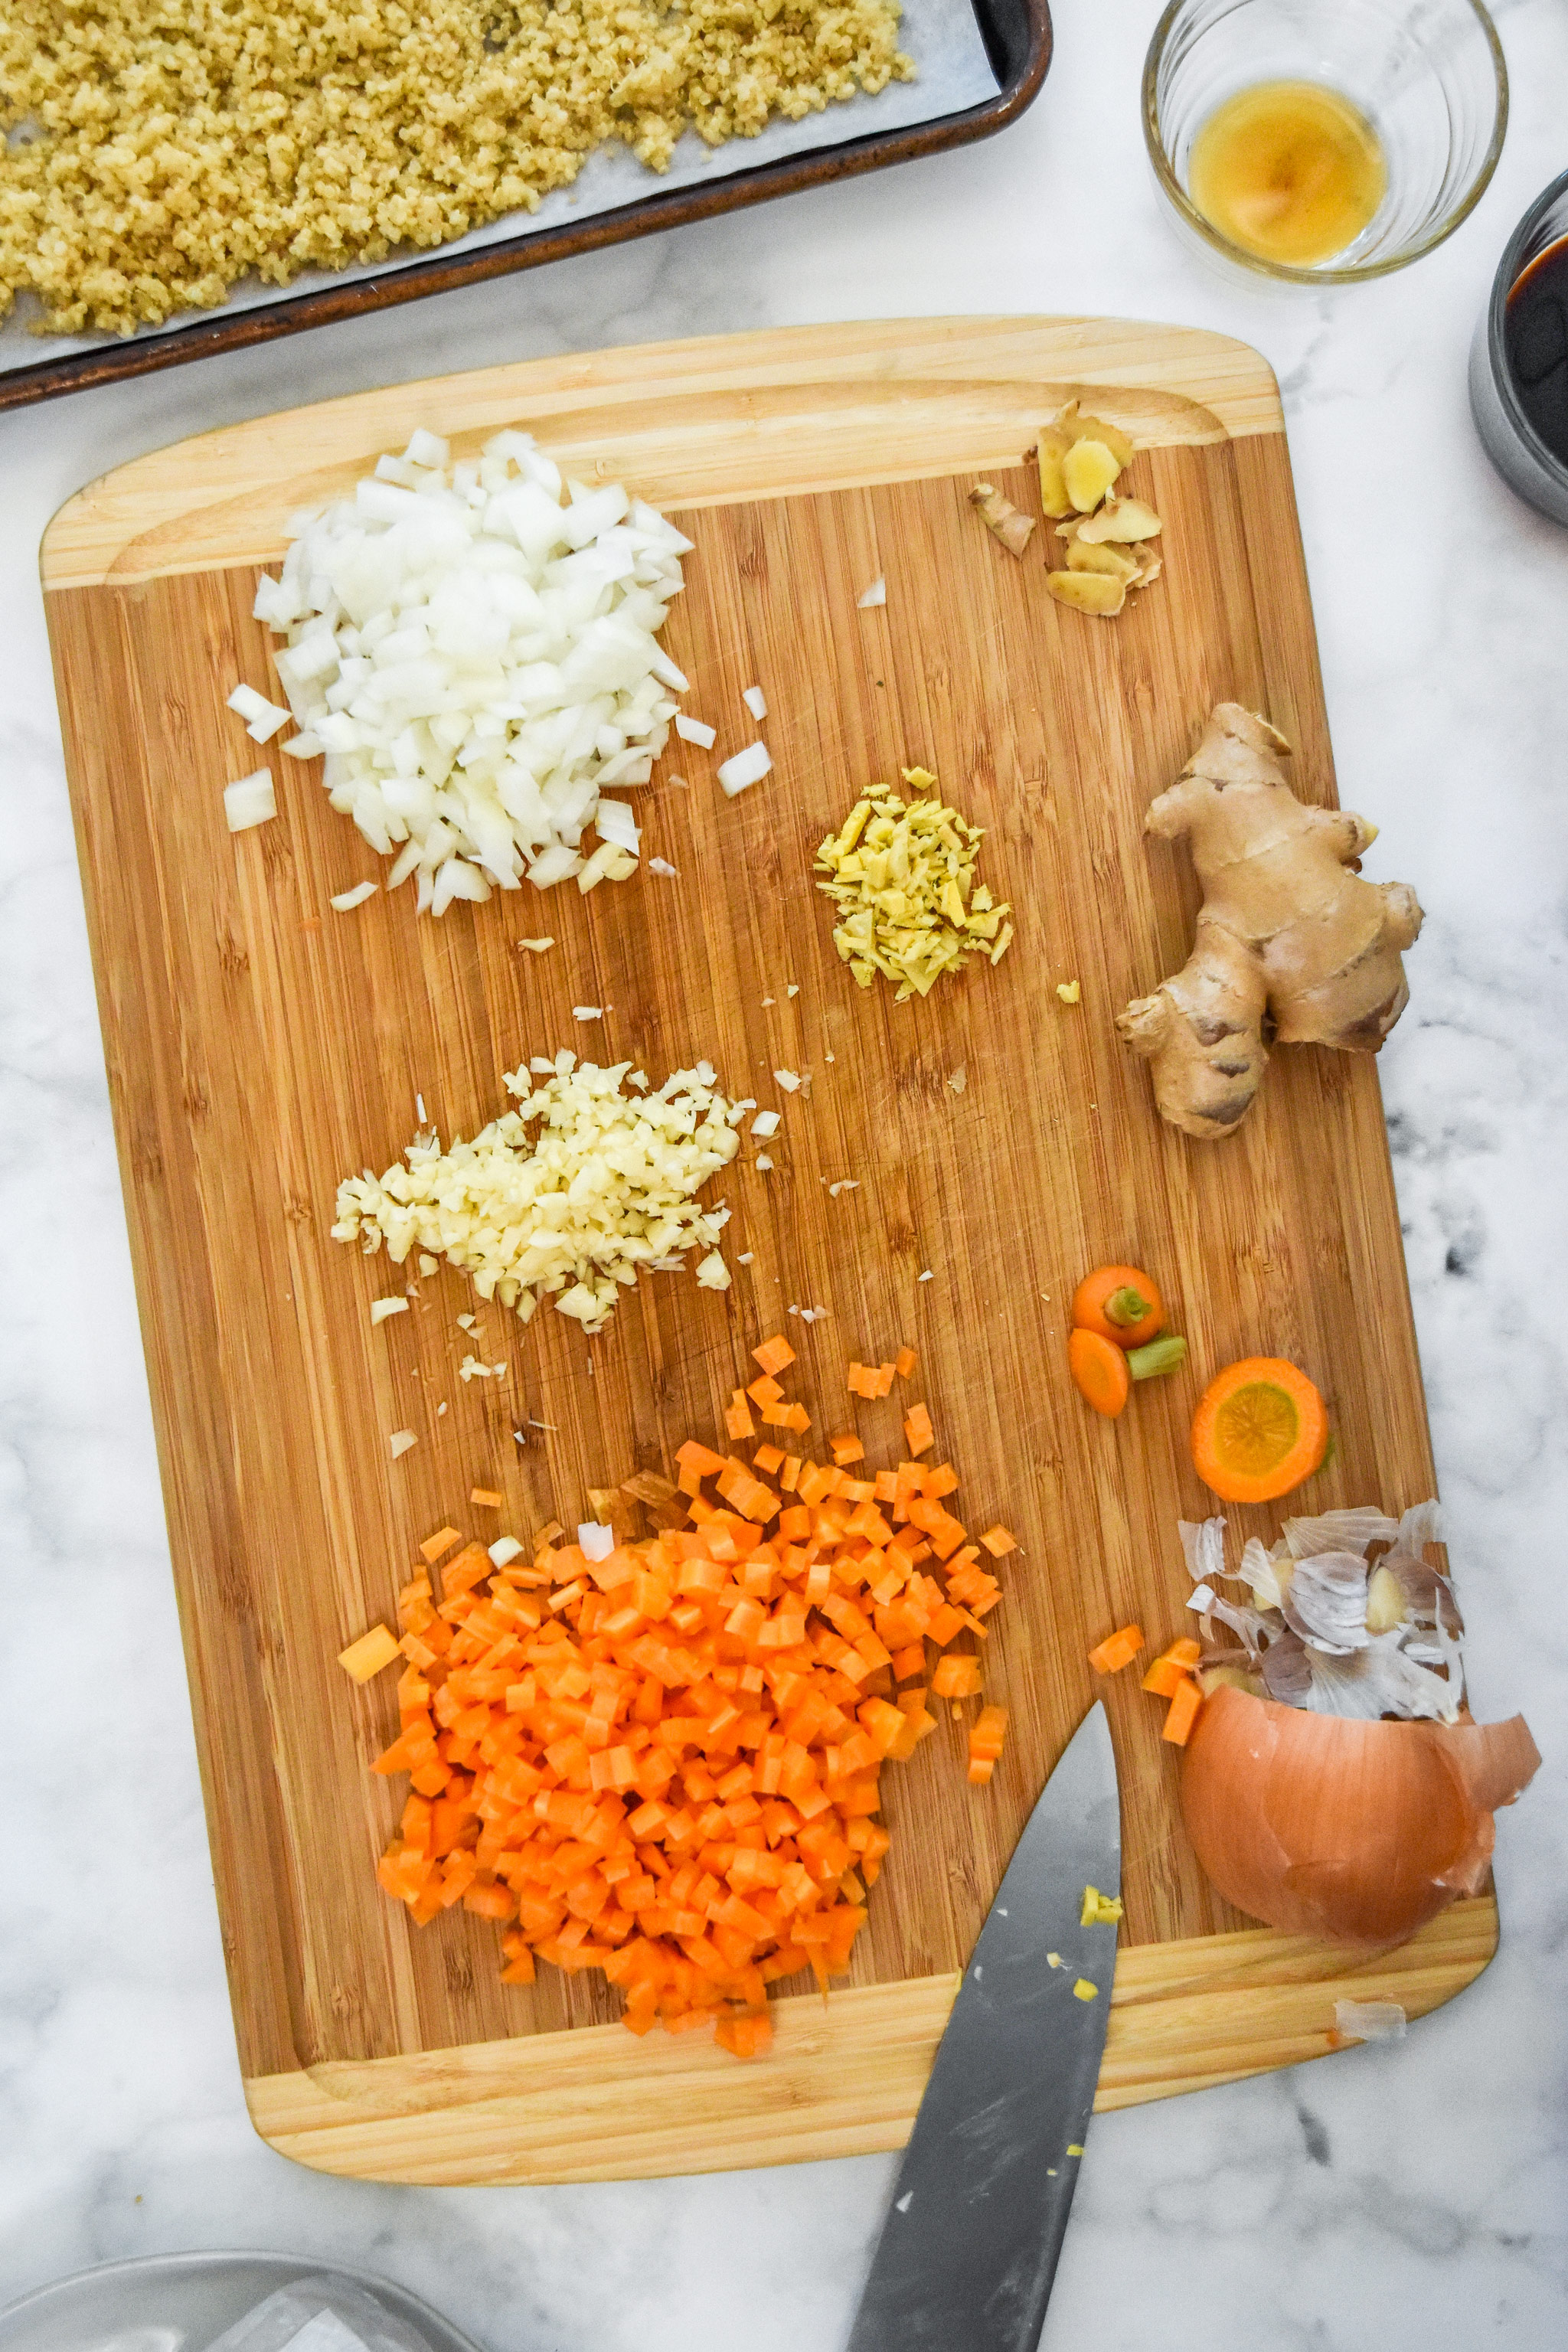 chopped and diced veggie ingredients on a cutting board.